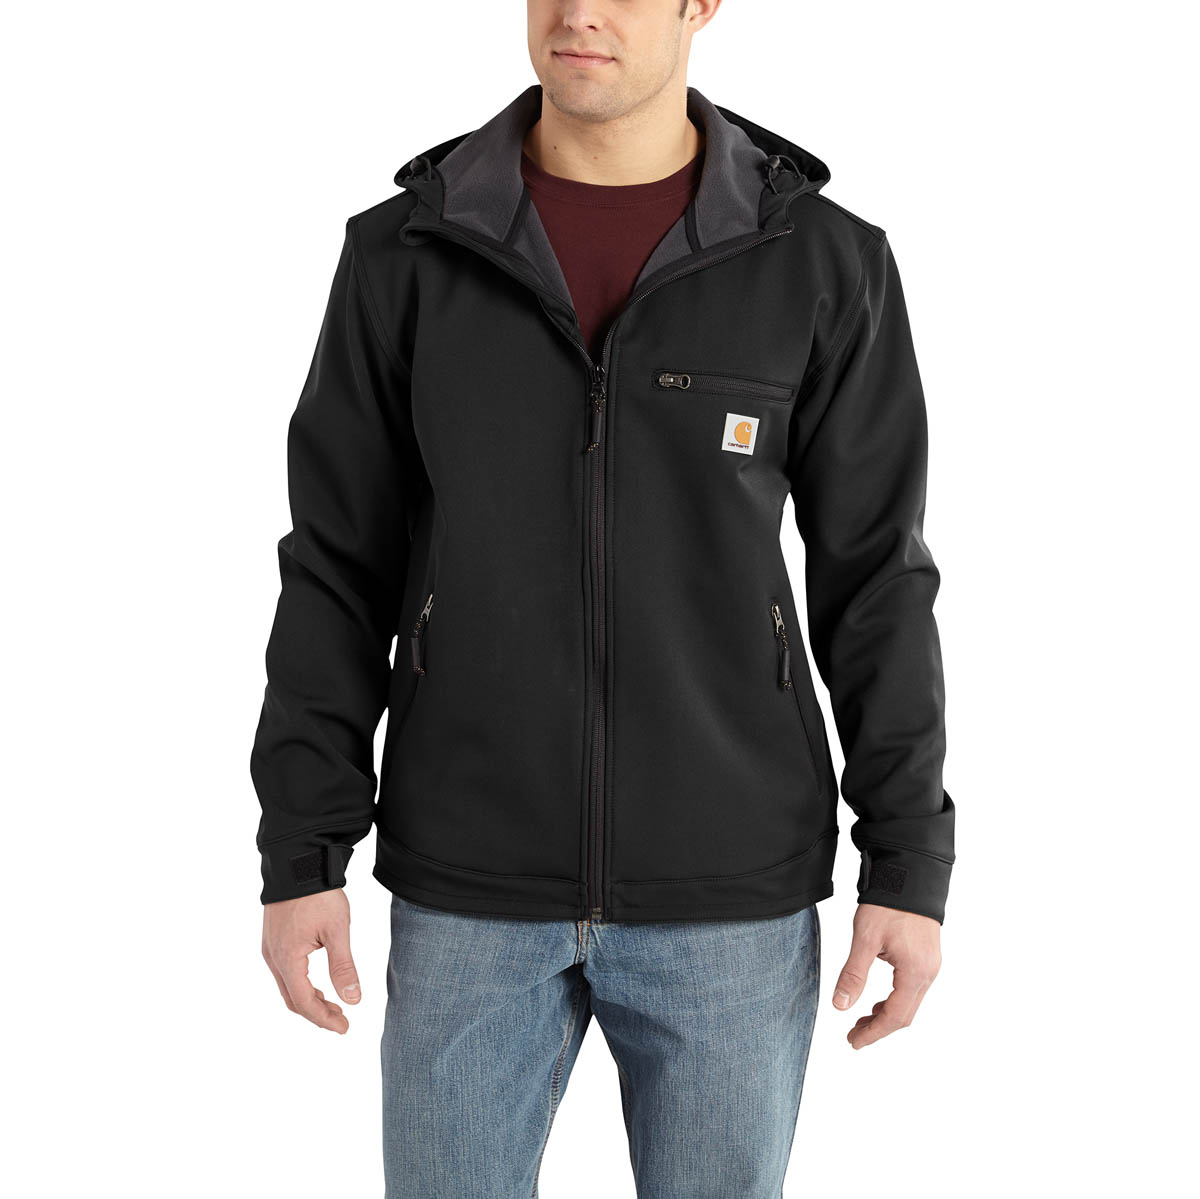 Carhartt Men's Crowley Hooded Jacket Discontinued Pricing